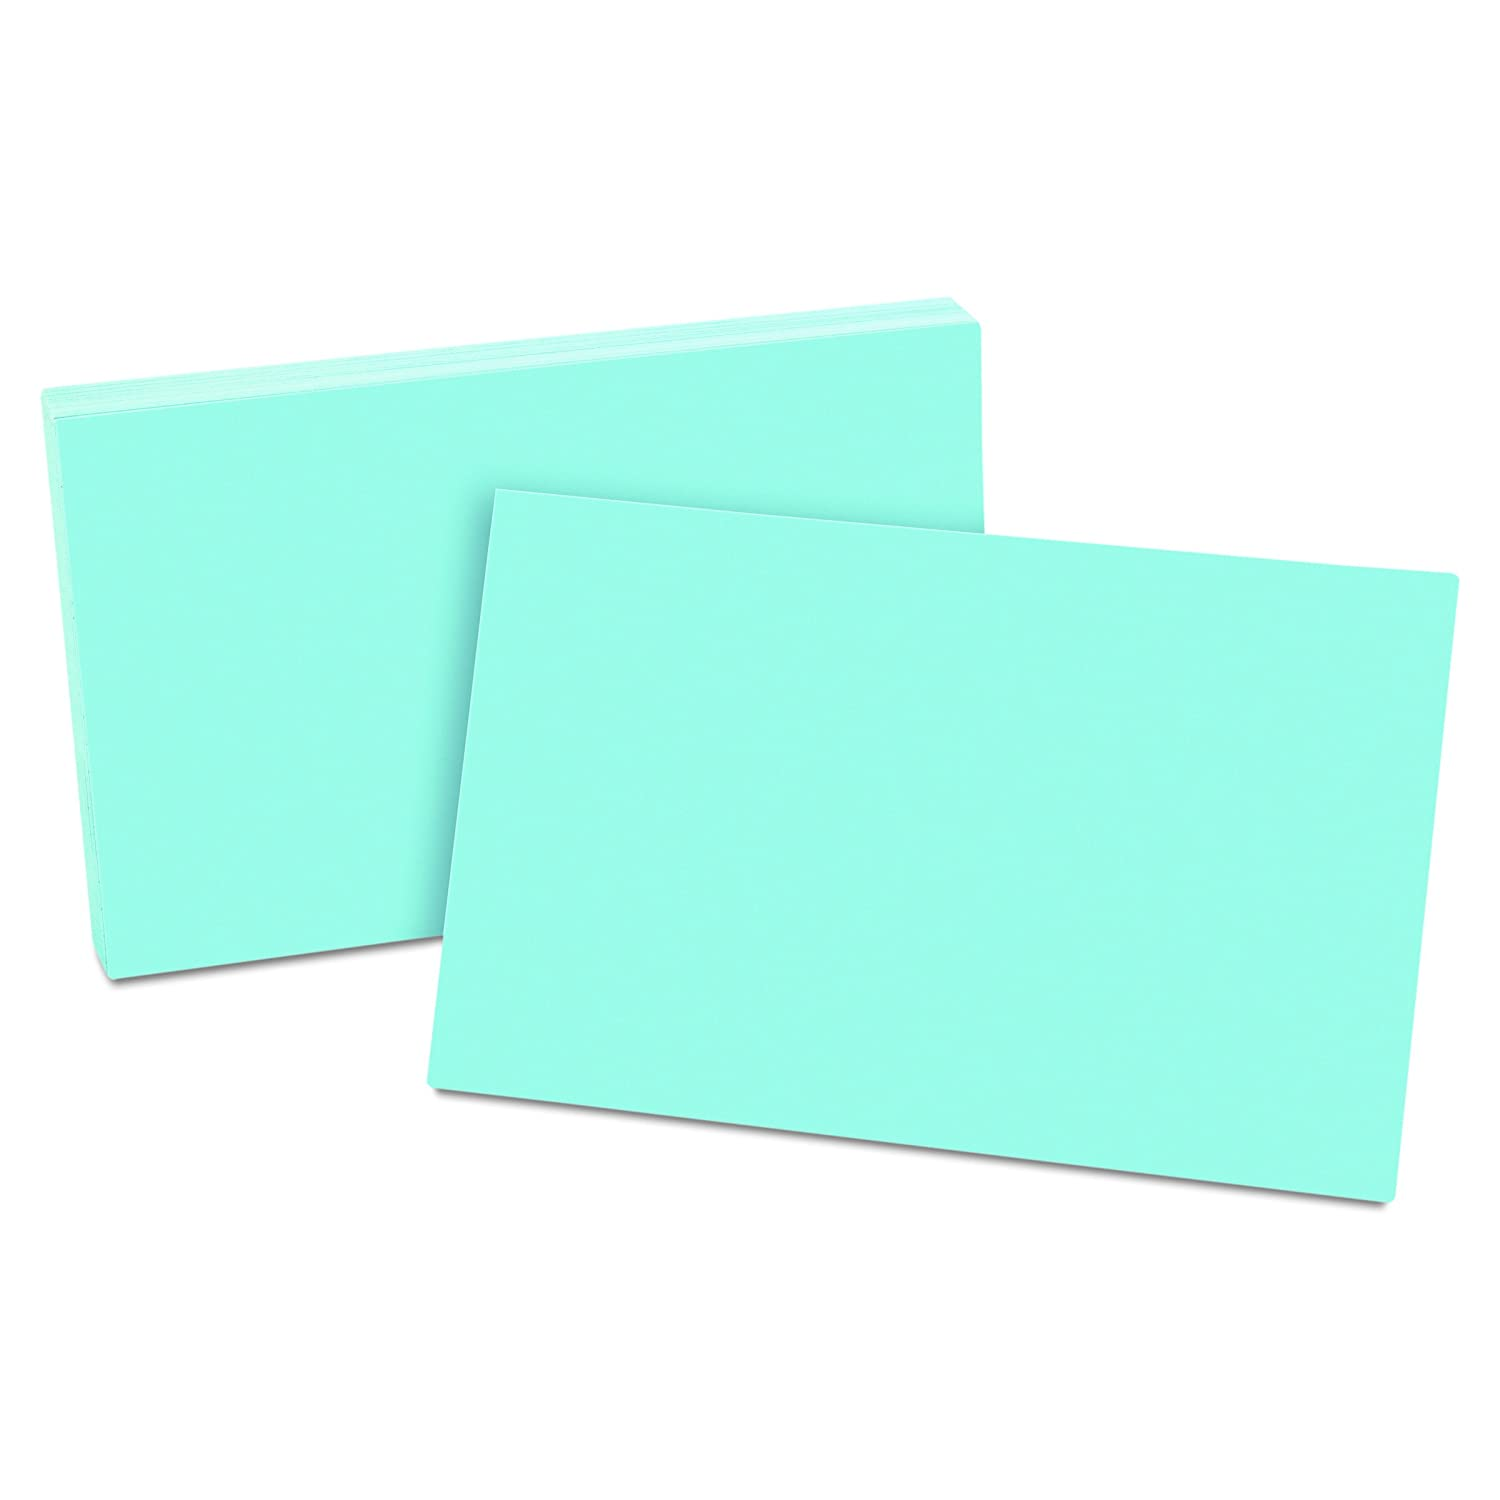 Oxford Unruled Index Cards, 5 x 8 Inches, Blue, 100 per Pack (7520-BLU) Esselte Corporation